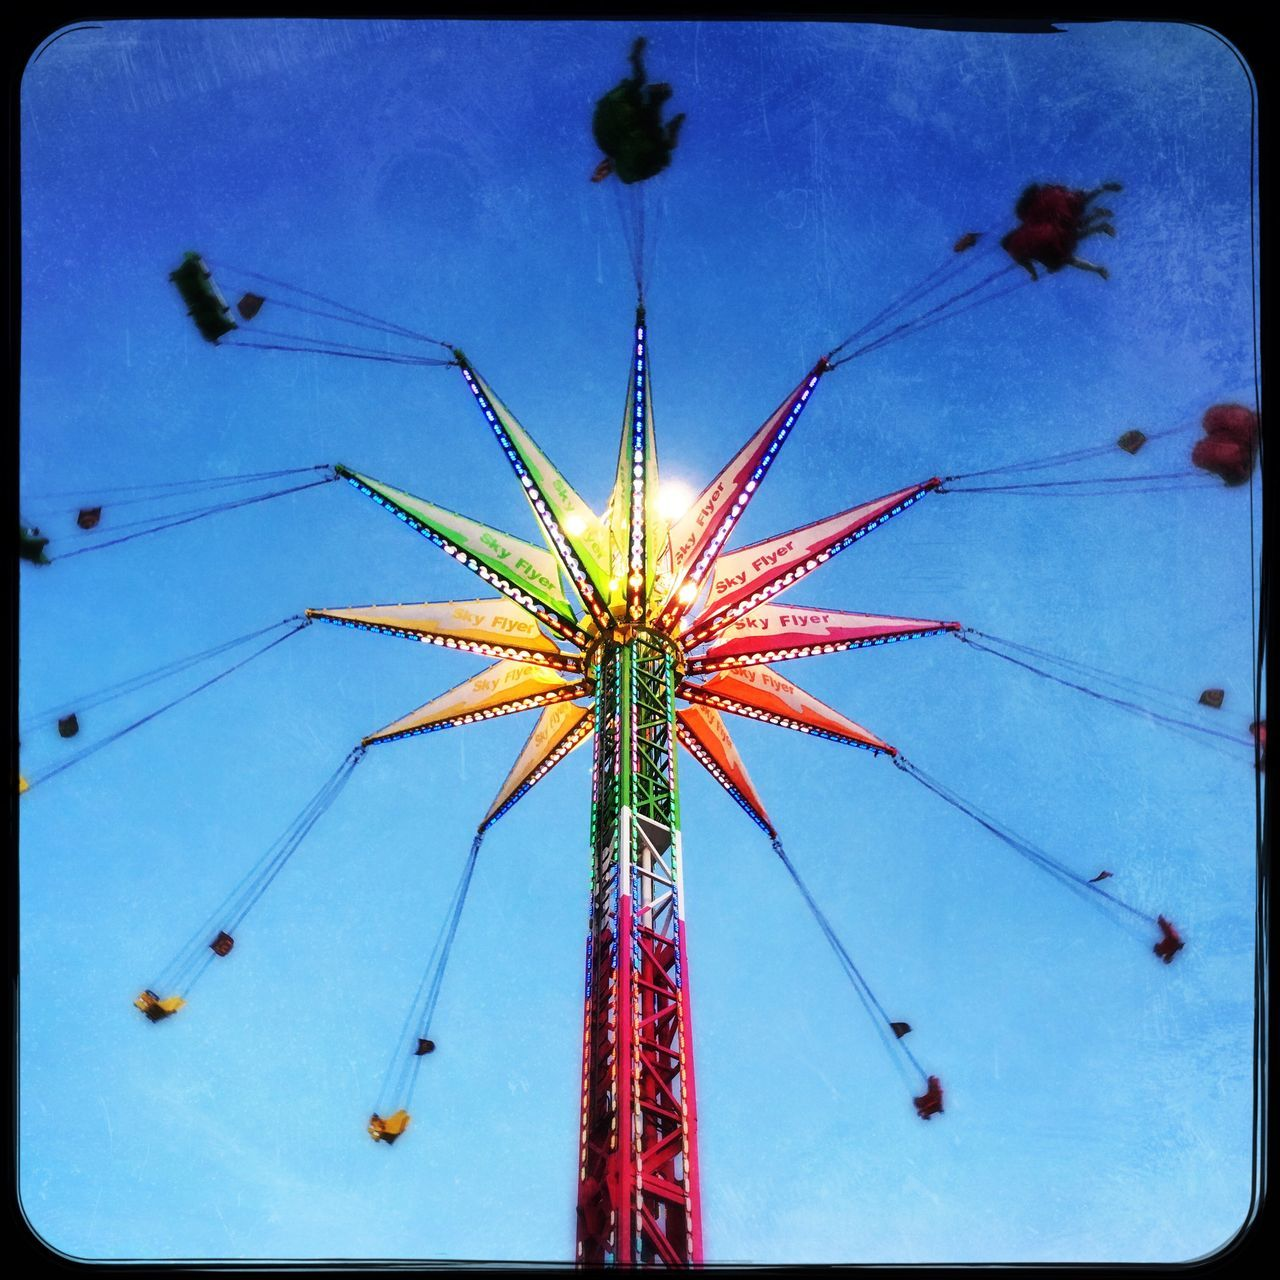 arts culture and entertainment, amusement park, low angle view, amusement park ride, blue, sky, outdoors, night, motion, no people, illuminated, clear sky